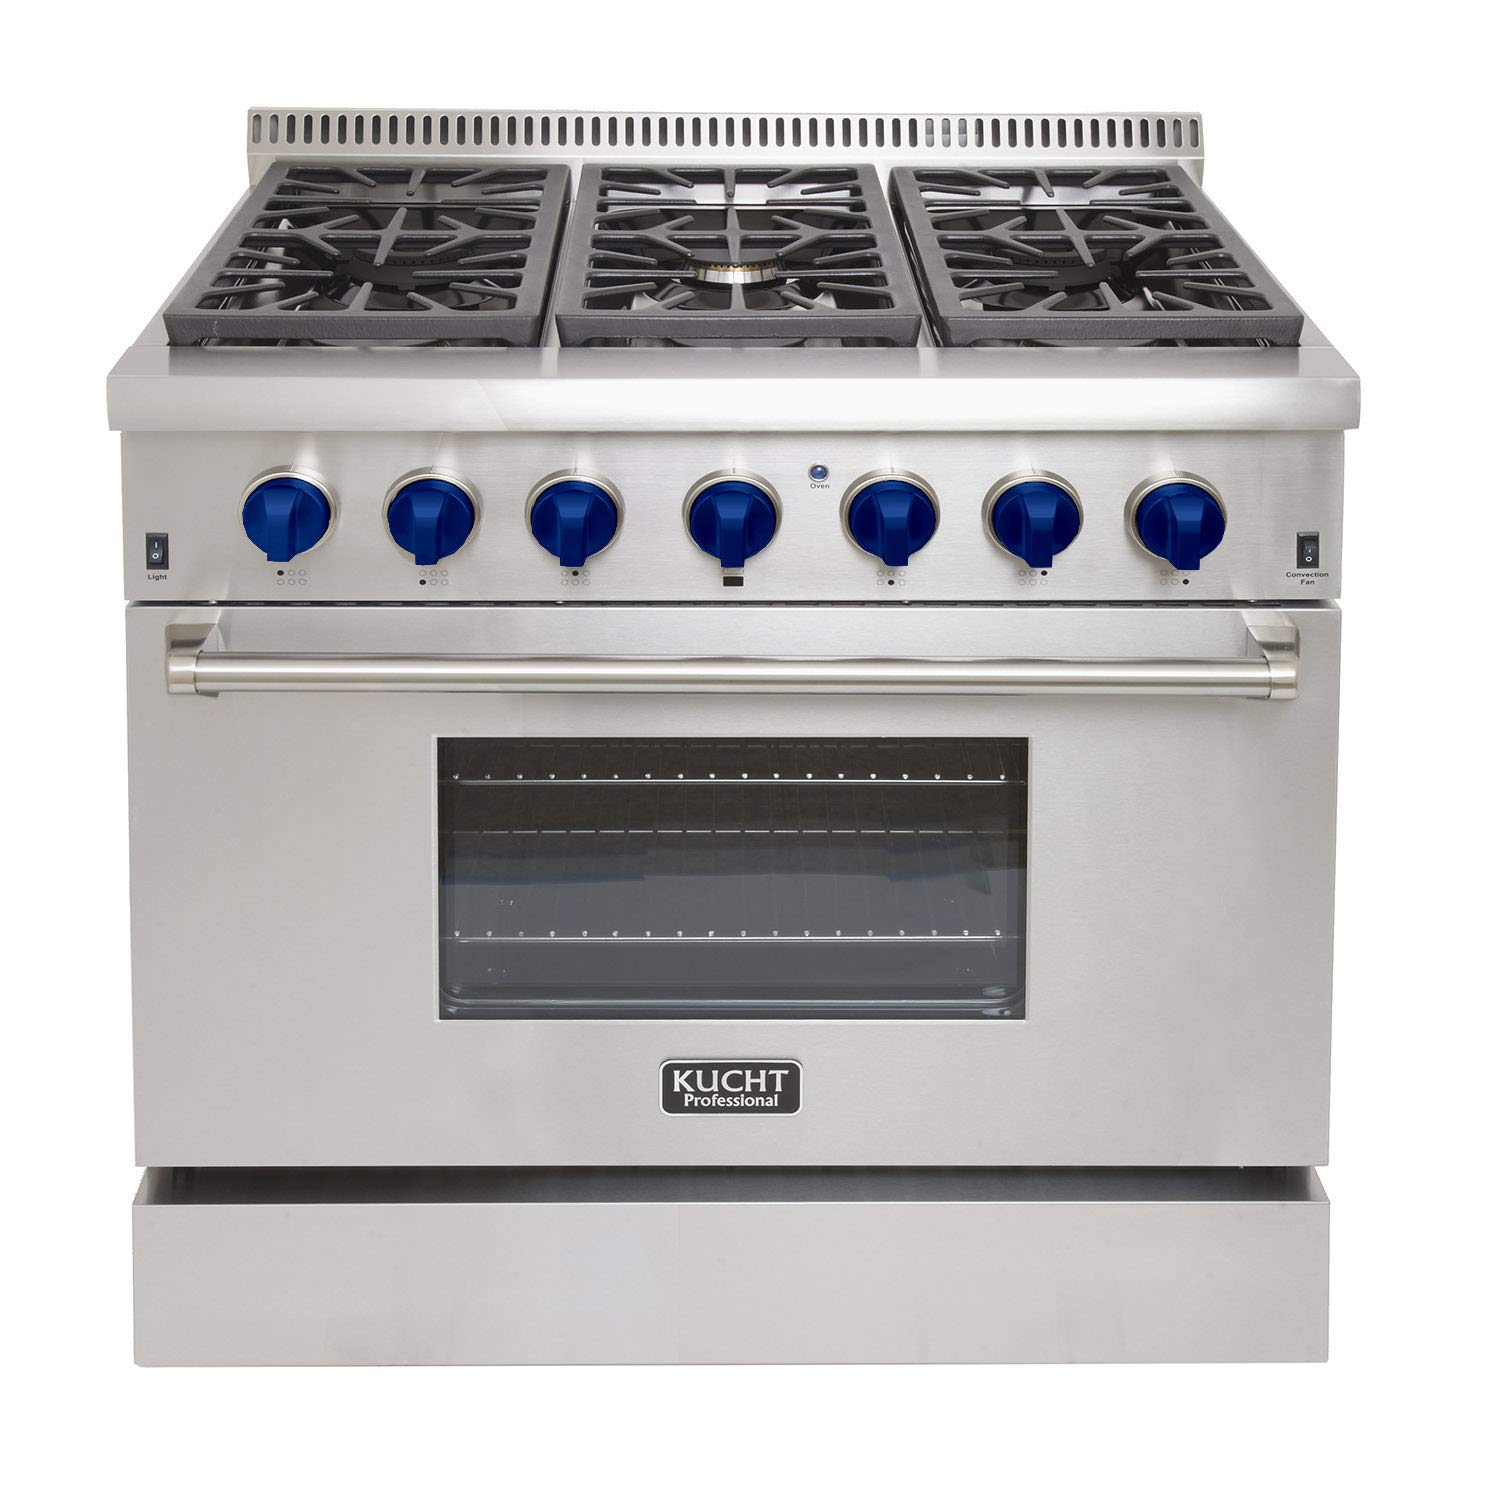 Kucht KRD366F-S Professional 36' 5.2 cu. ft. Dual Fuel Range for Natural Gas, Stainless-Steel, Classic Silver Kucht Appliances